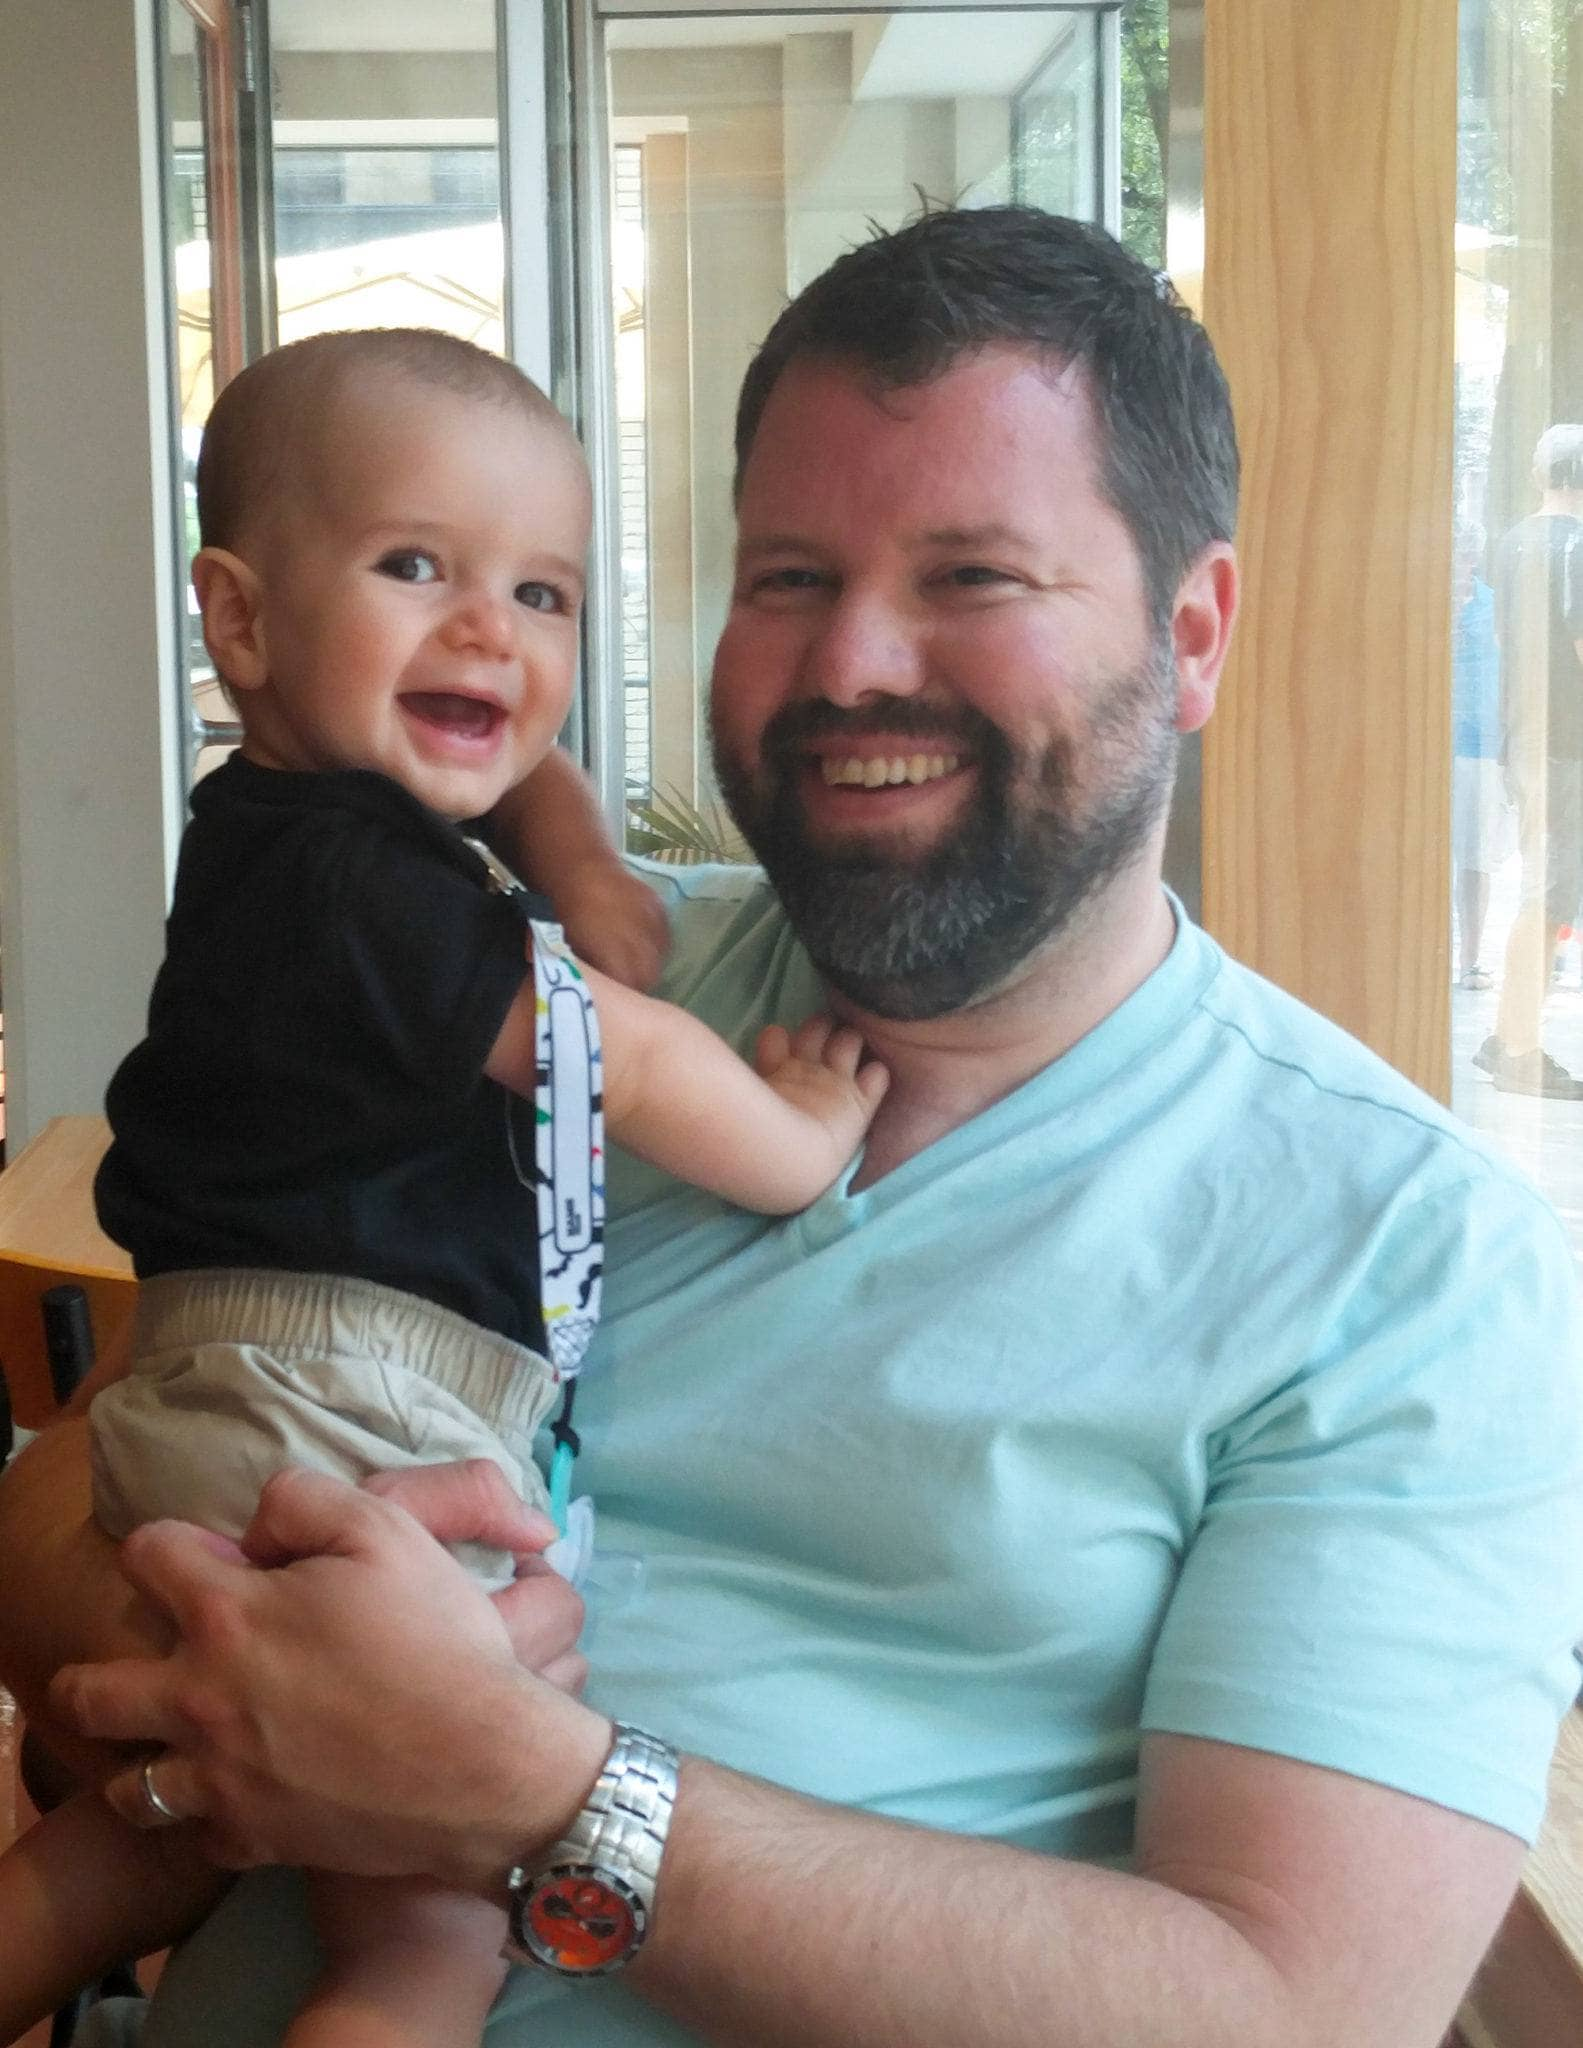 Daddy and baby chilling out at Newgrass Brewing ~ 10 Tips for Visiting a Brewery with Kids